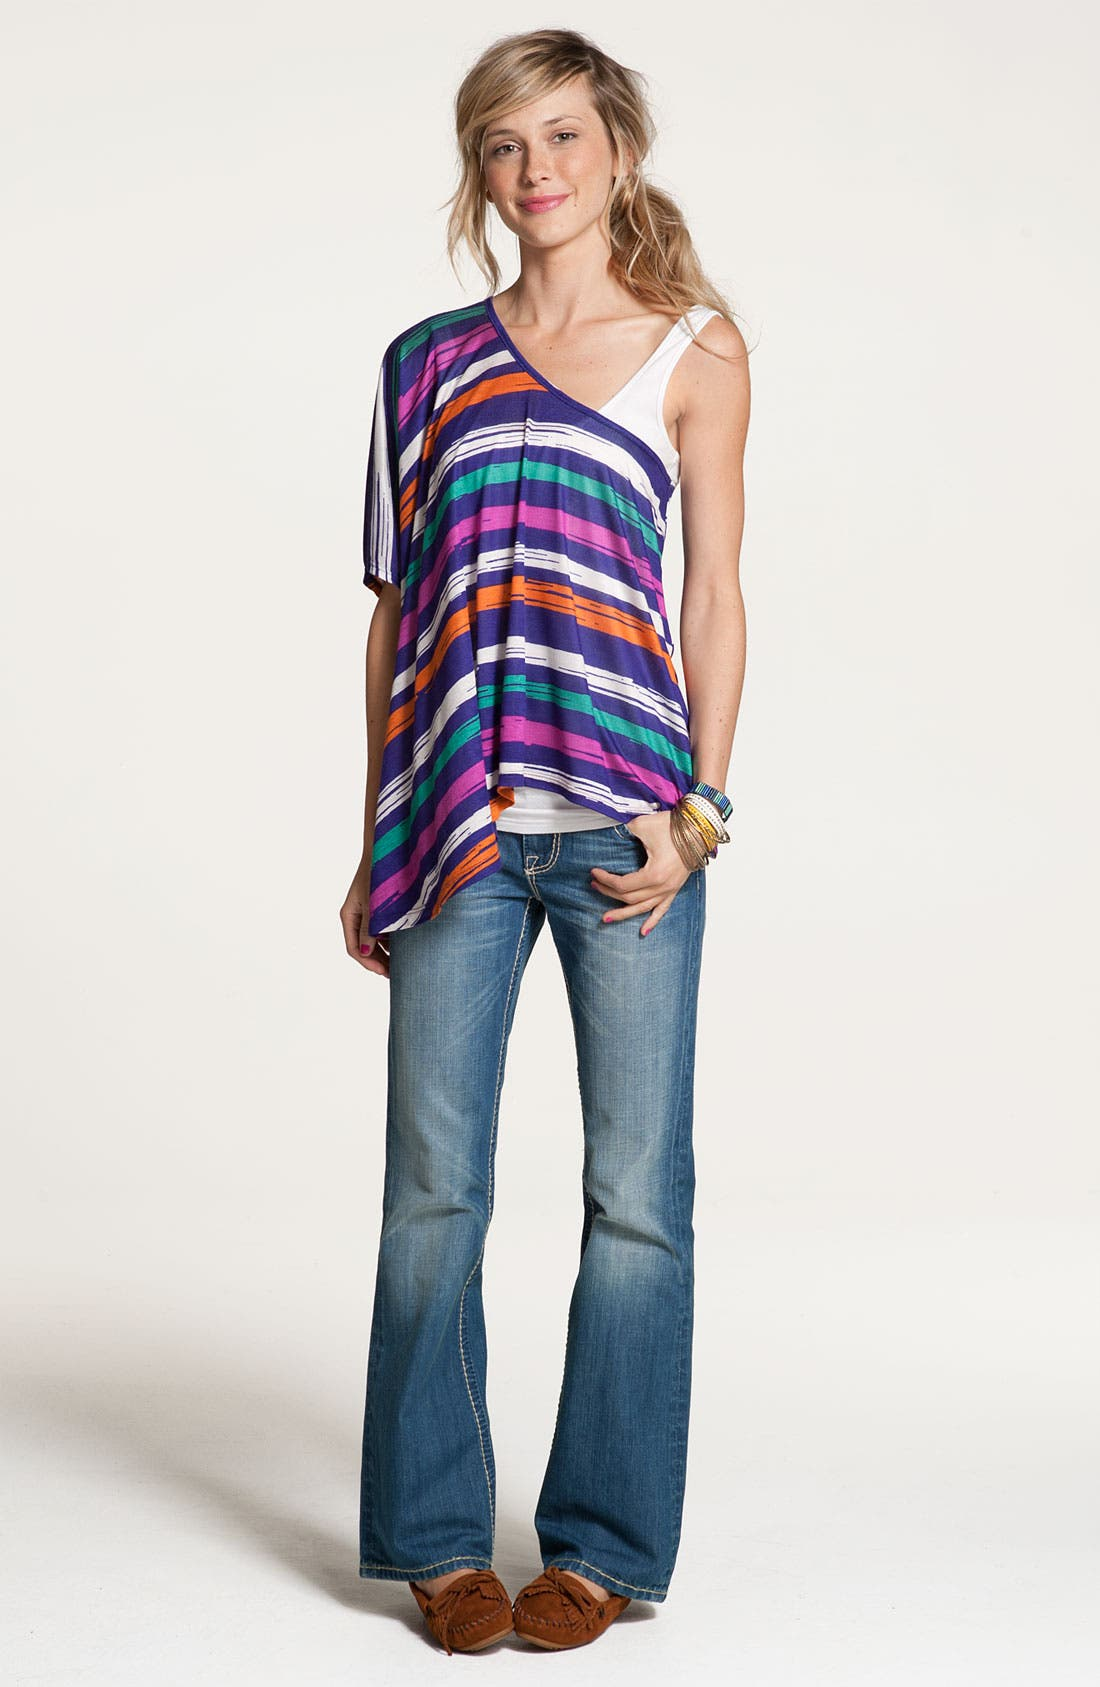 Alternate Image 1 Selected - Lush Top & Big Star Bootcut Jeans